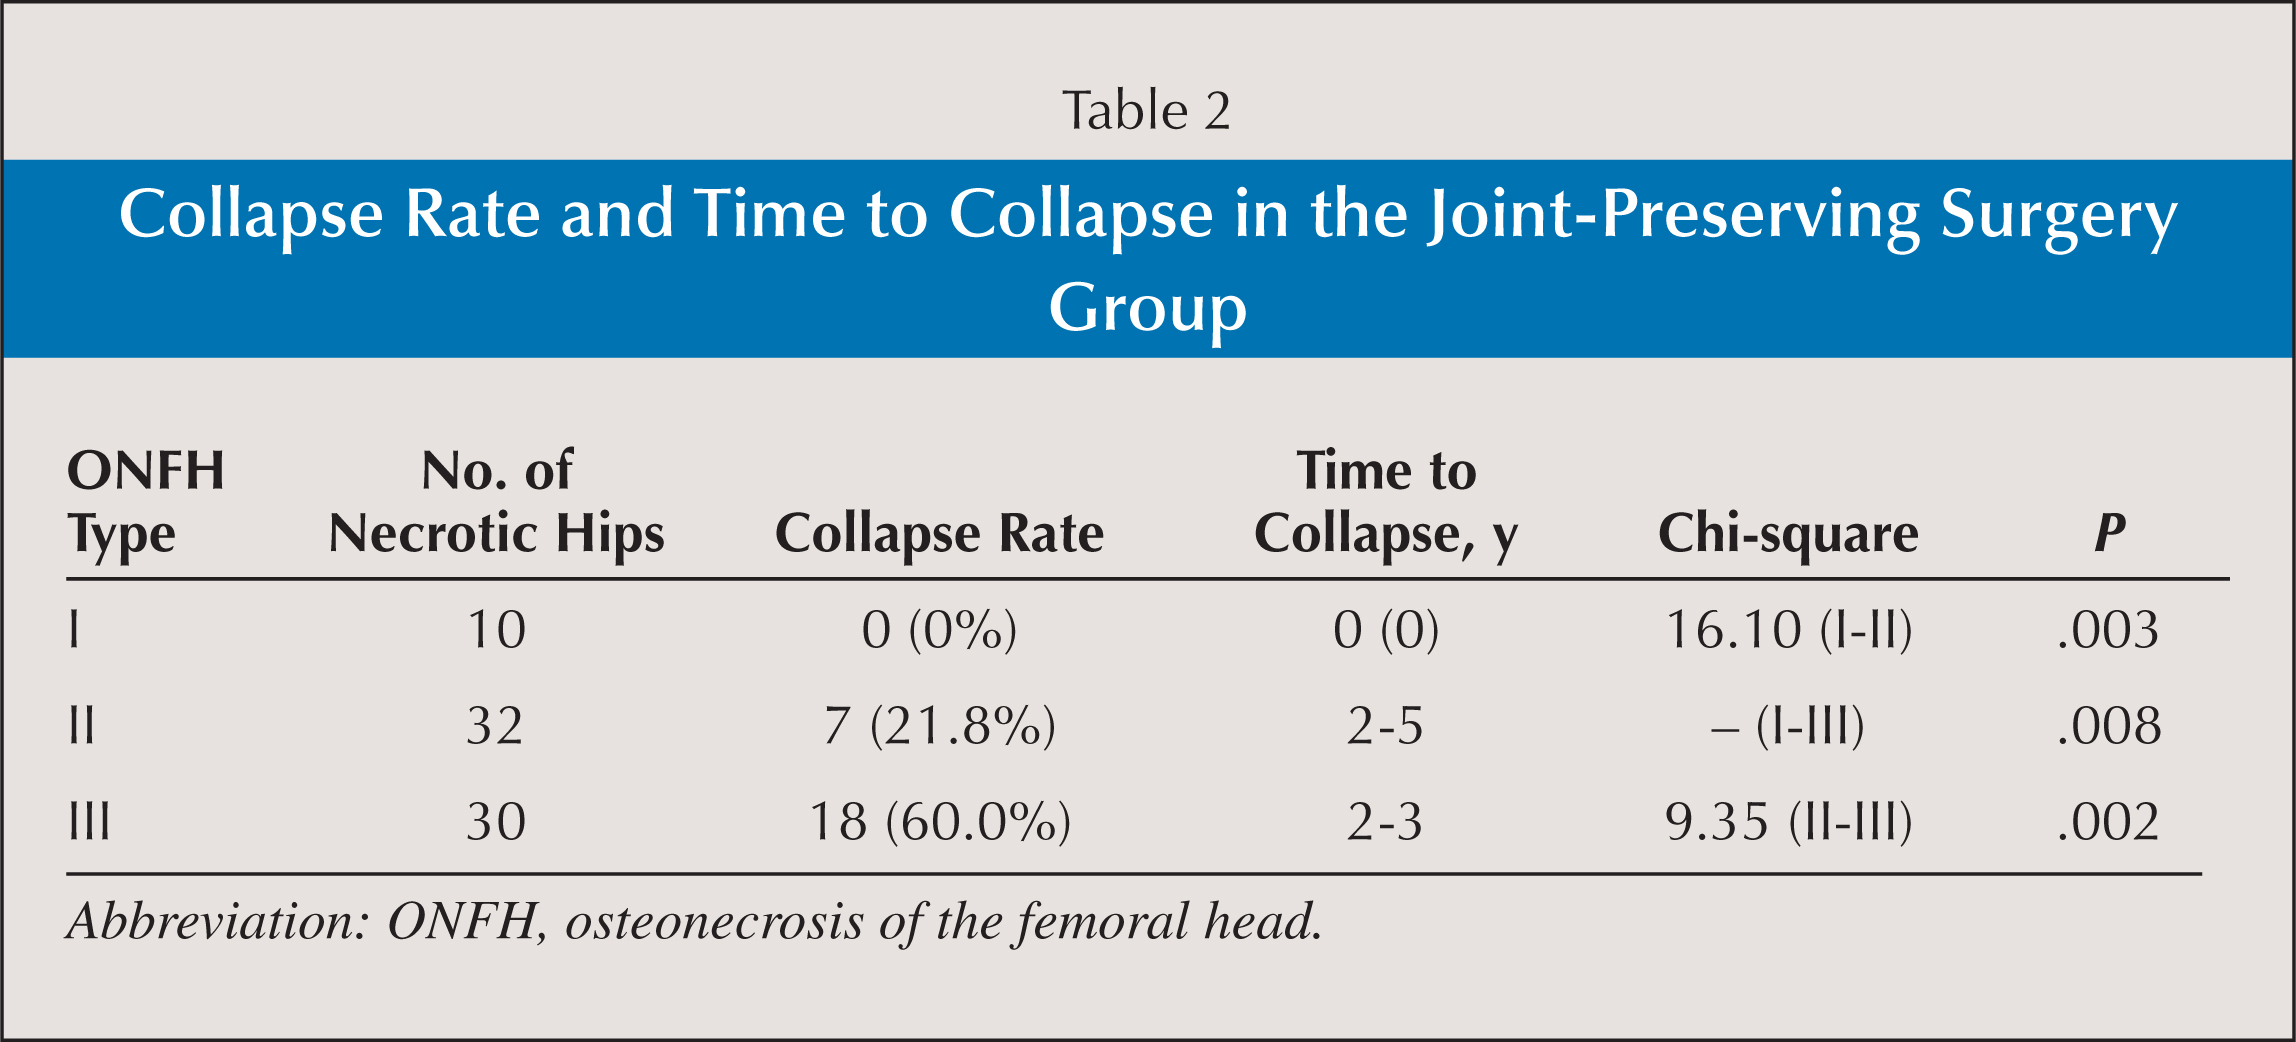 Collapse Rate and Time to Collapse in the Joint-Preserving Surgery Group